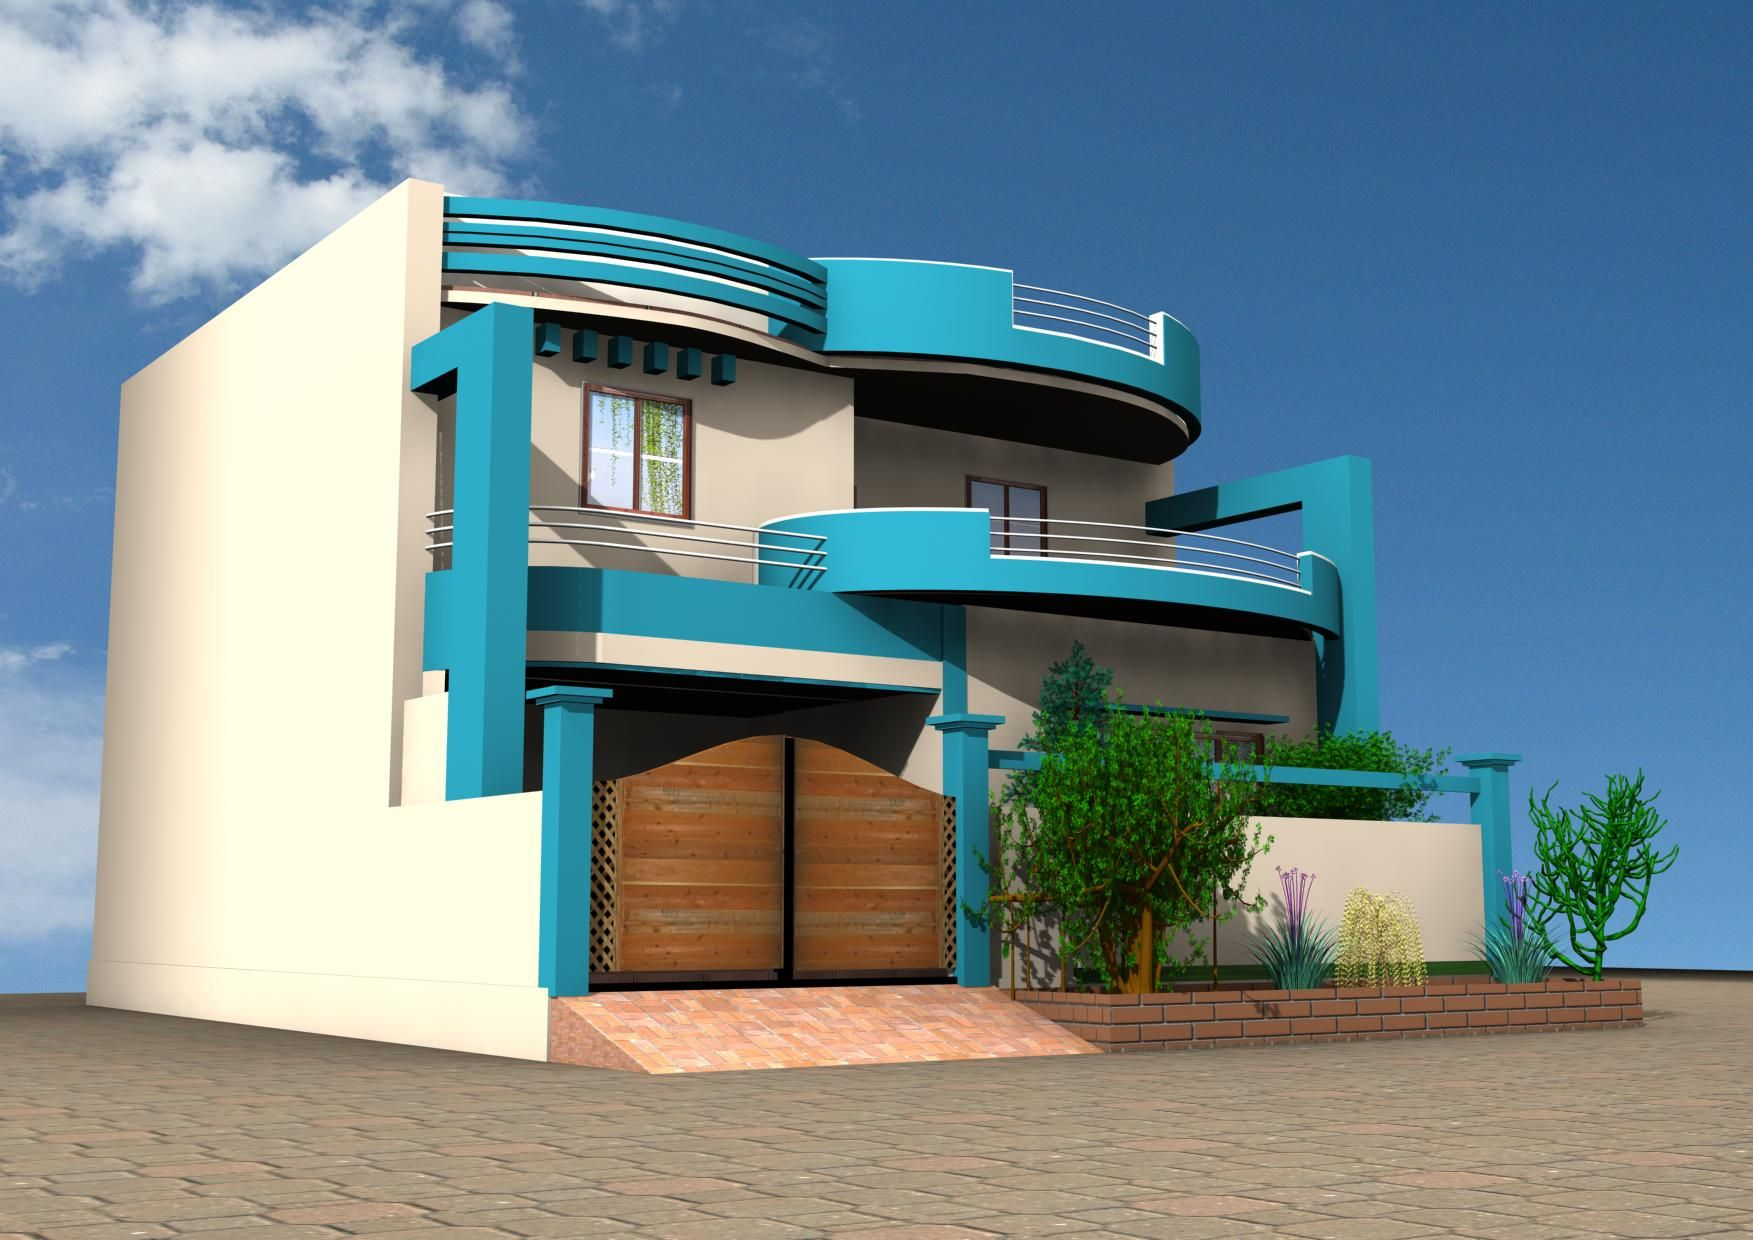 3d home design images hd 1080p for Build a home online free